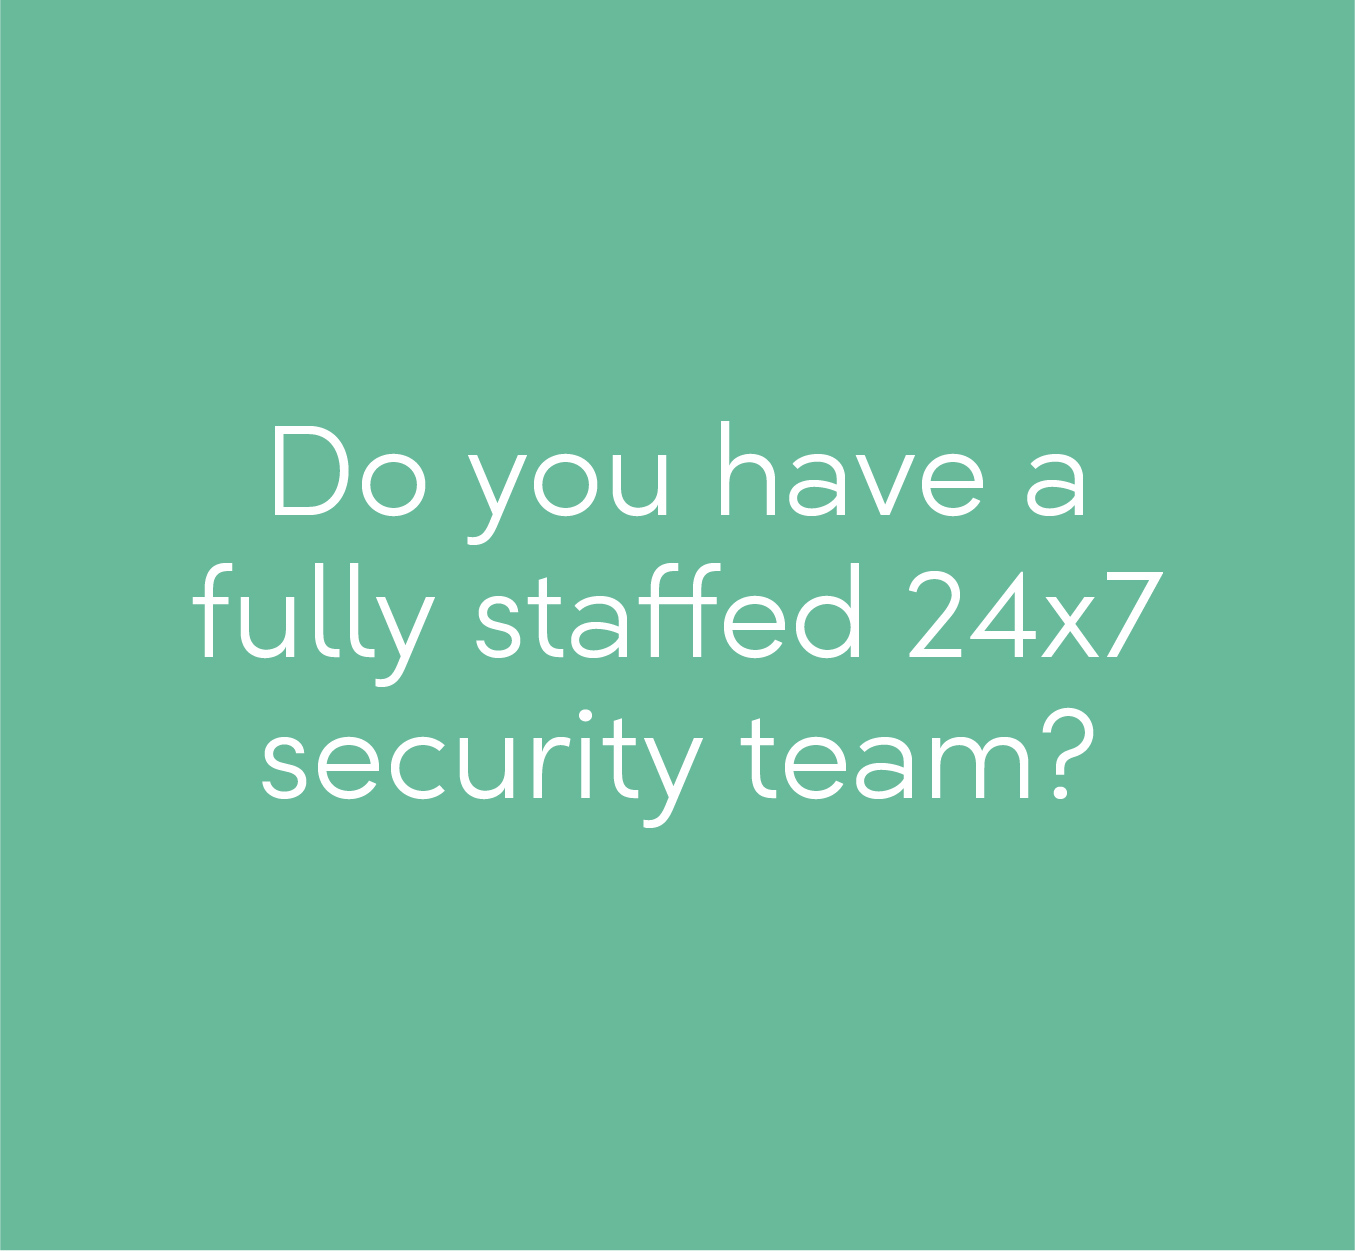 Do you have a fully staffed security team?